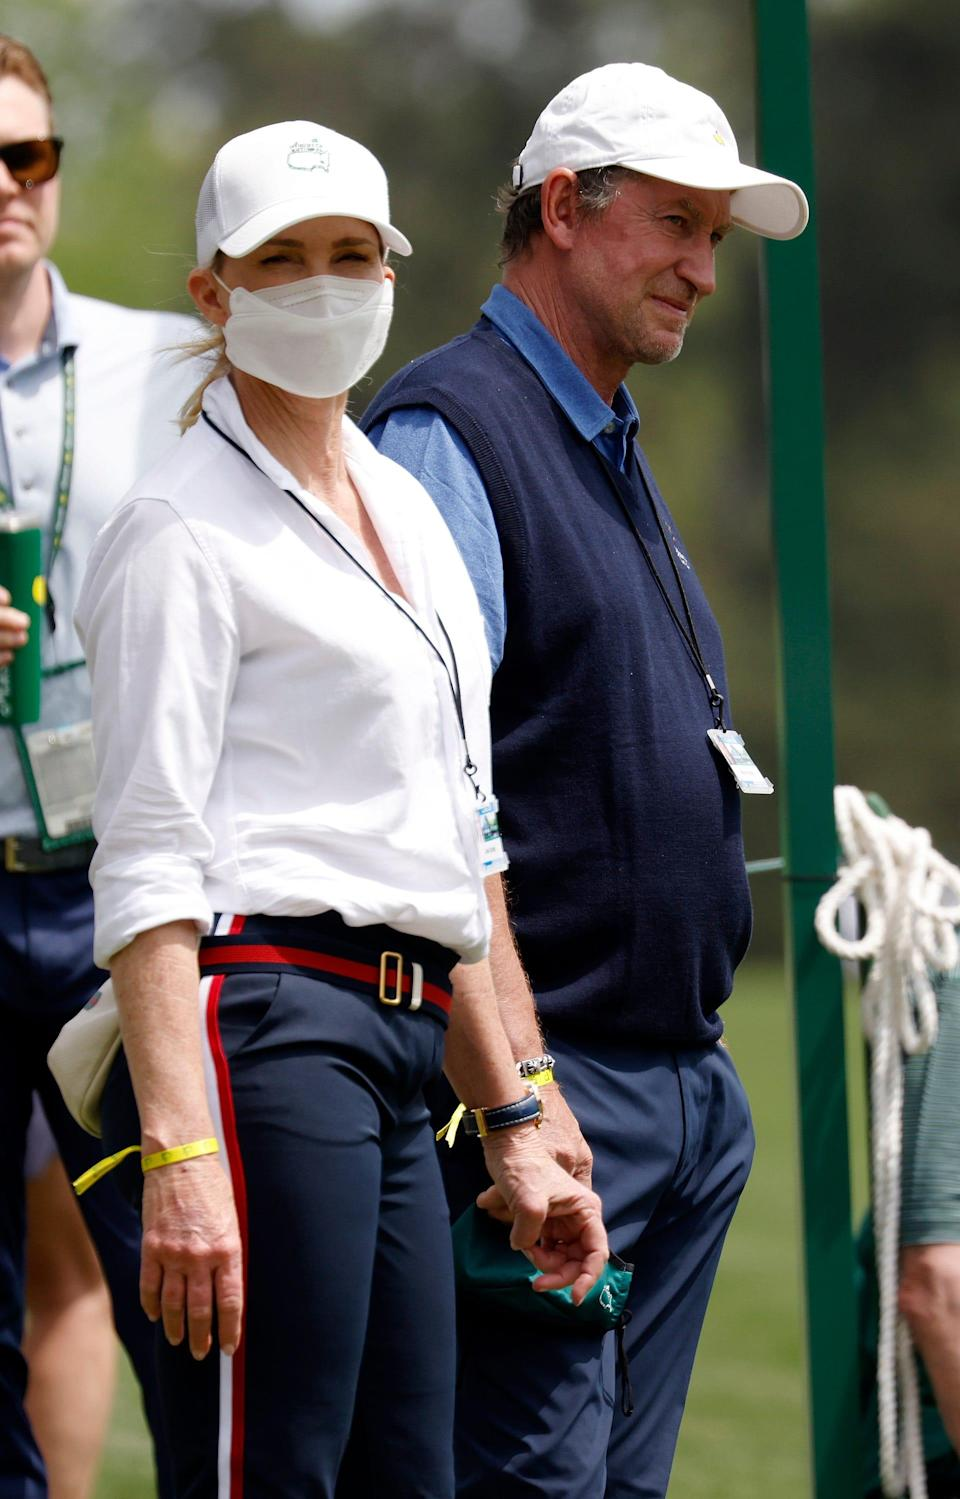 Wayne Gretzky and his wife, Janet, watch Dustin Johnson on No. 13 during Thursday's first round for the Masters at Augusta National Golf Club, Thursday, April 8, 2021, in Augusta, Georgia.